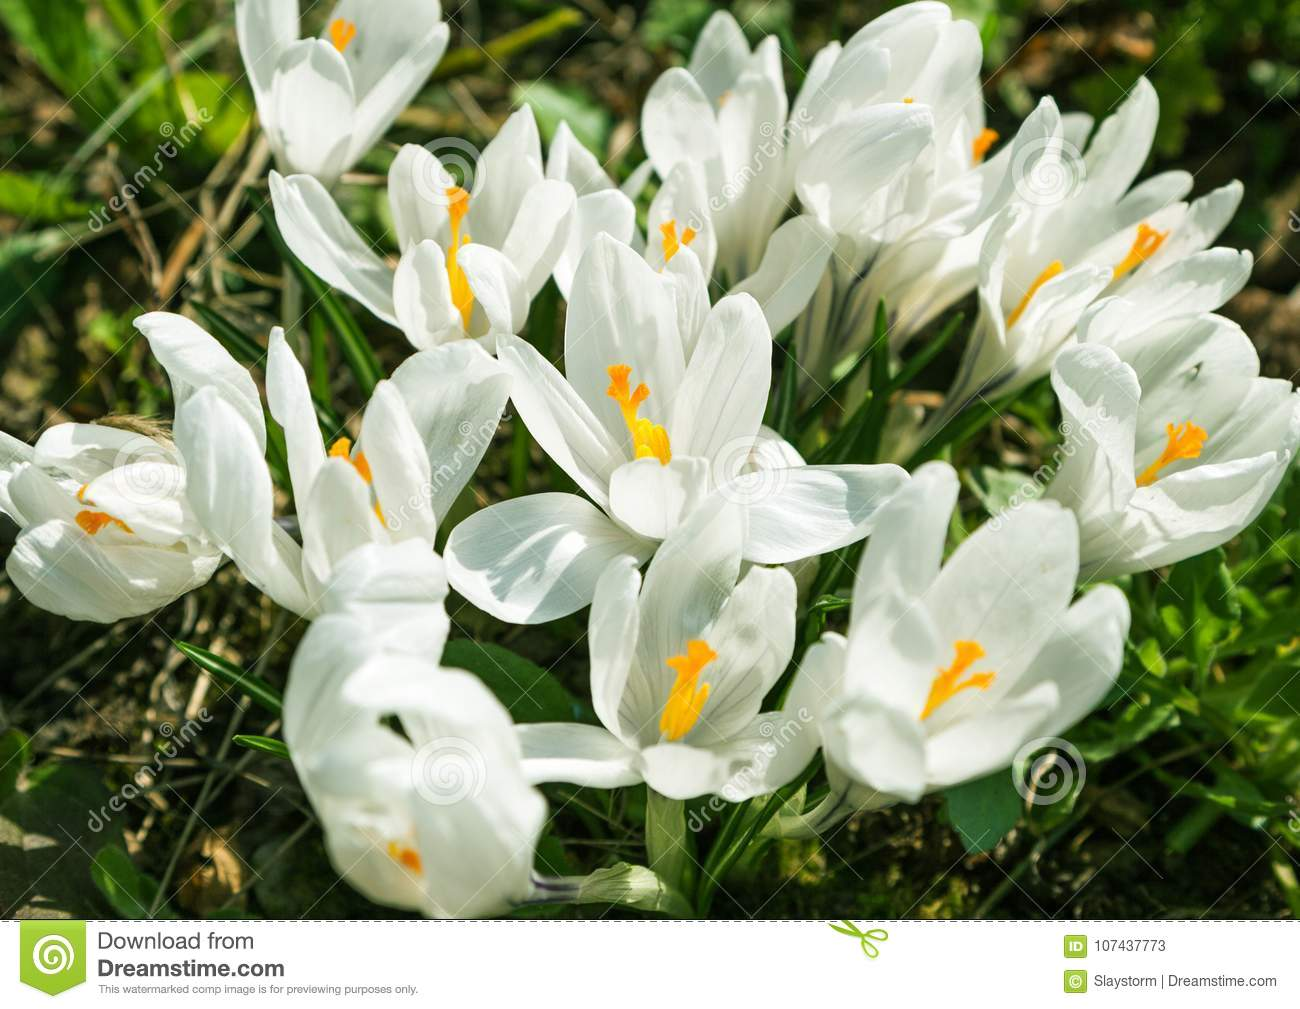 White Crocus Flowers Bloom In The Sunlight Of A Spring Garden Stock